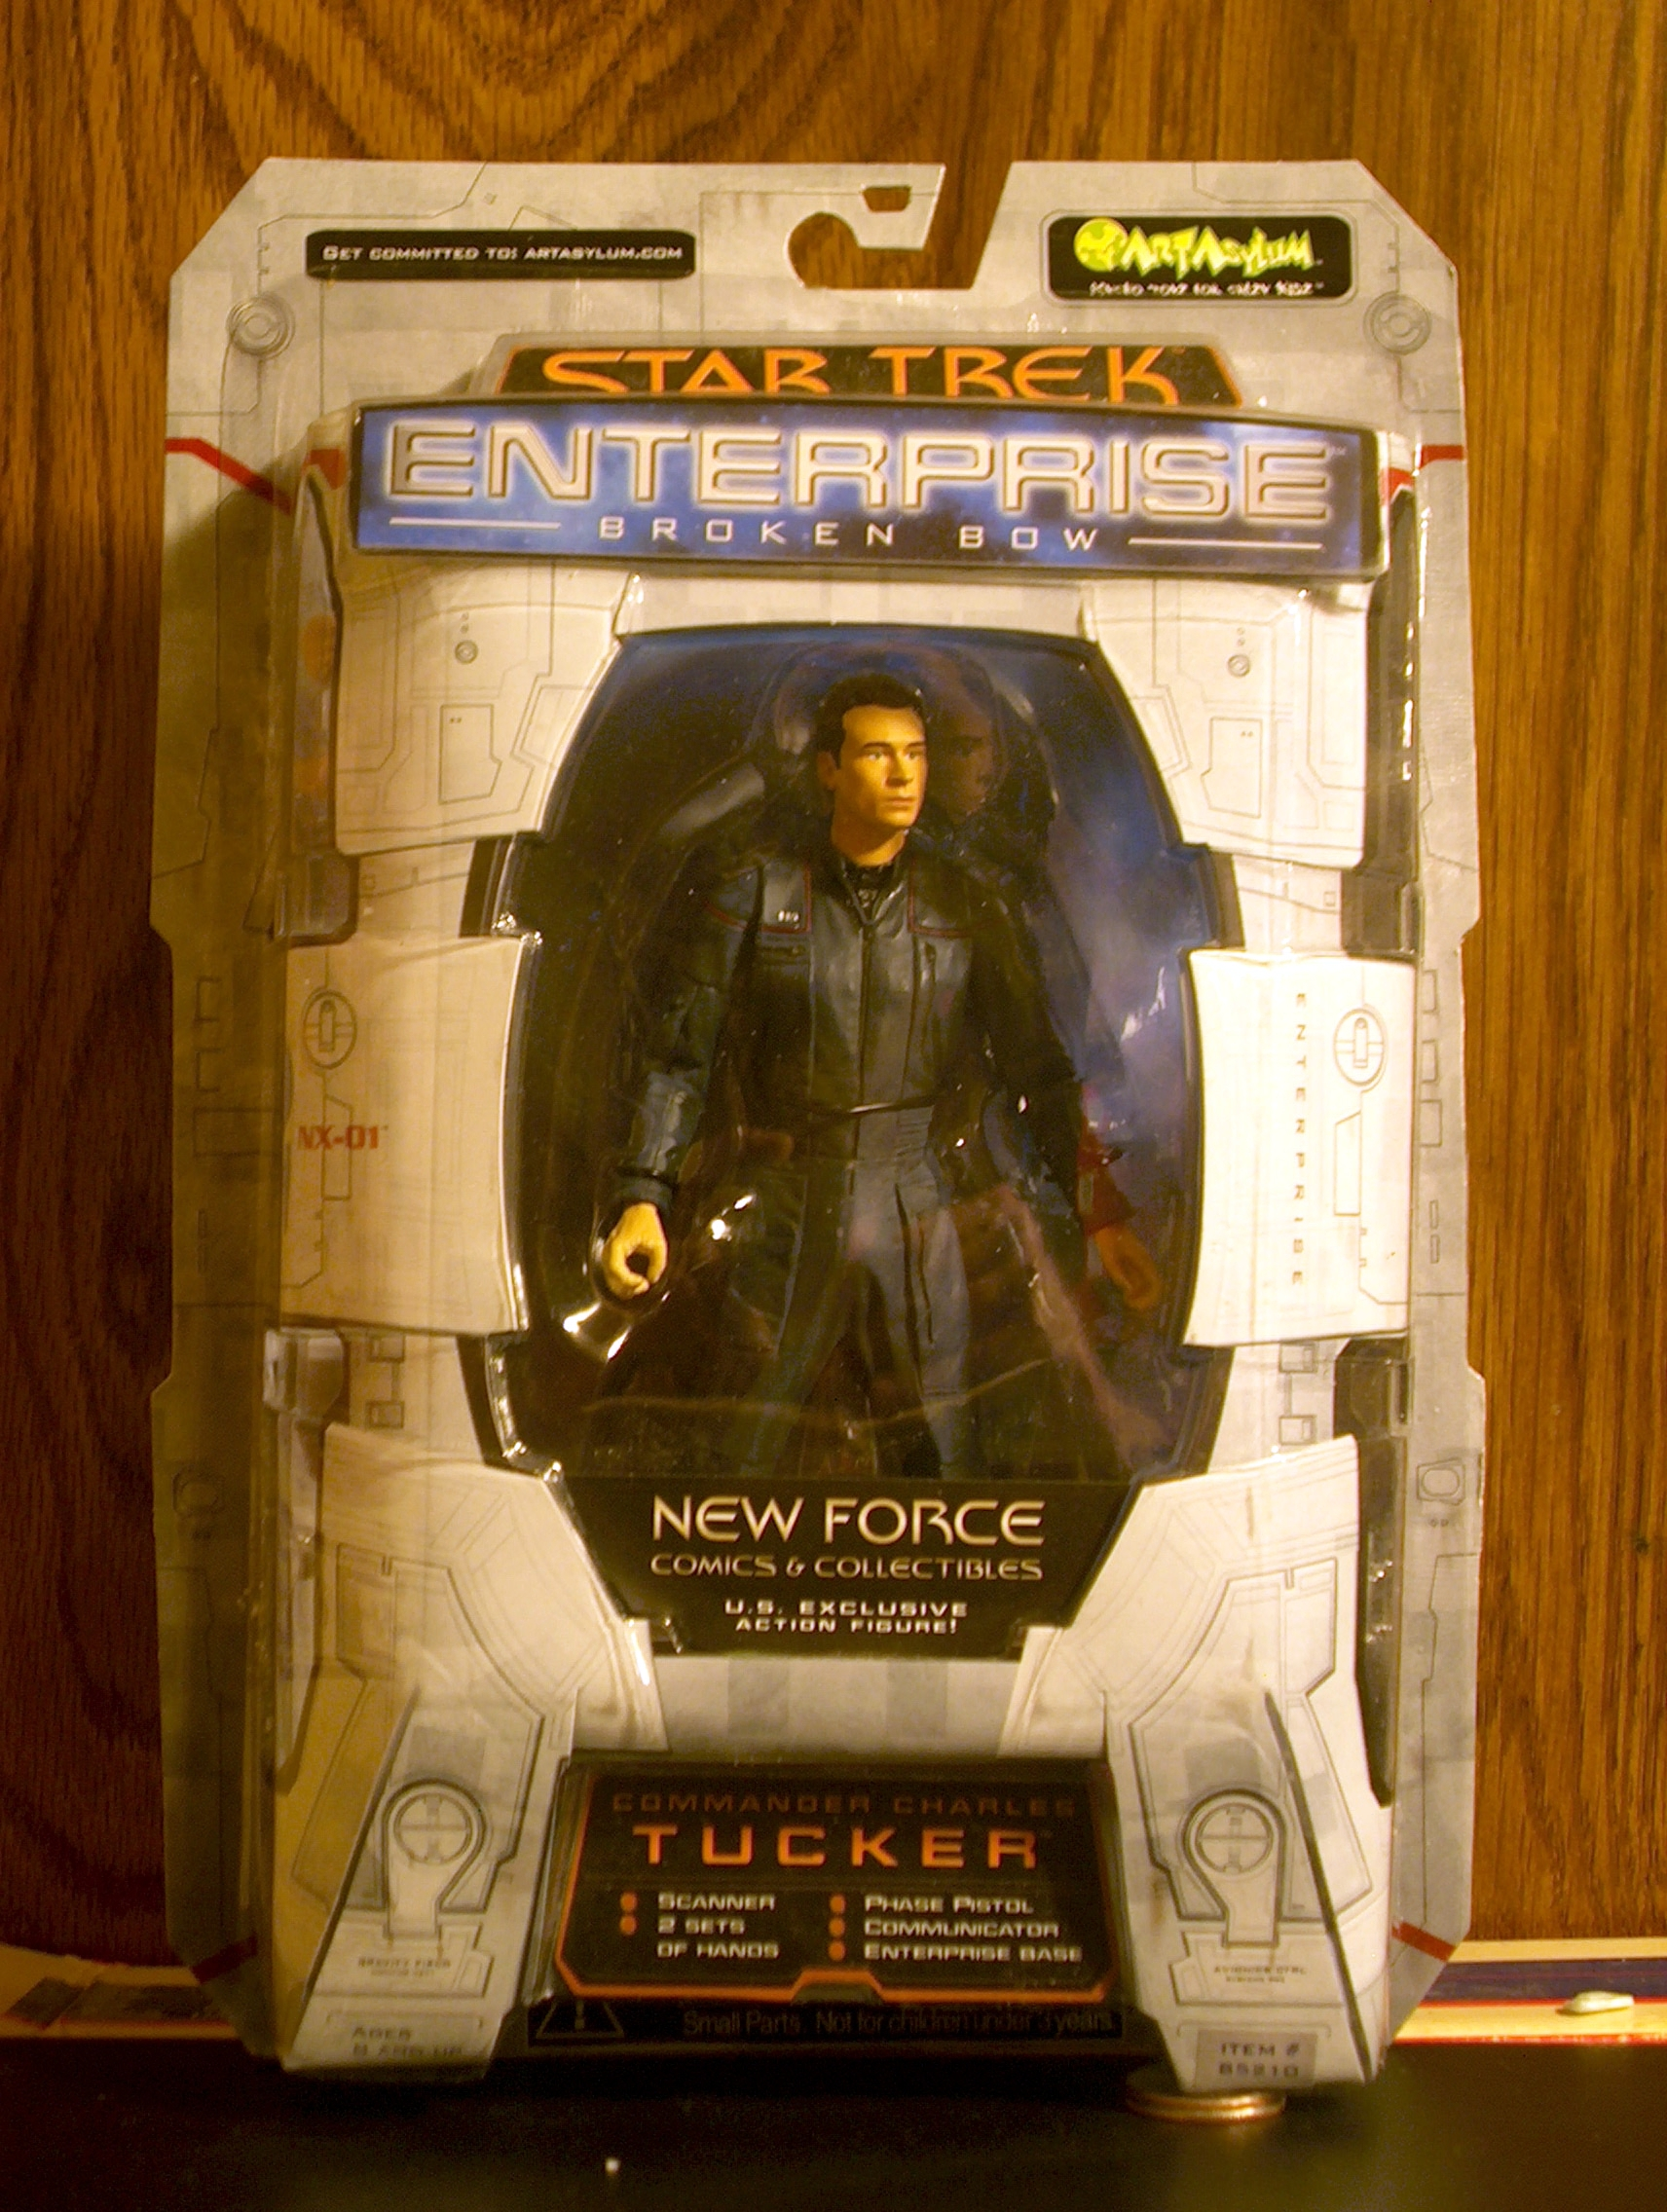 Commander Charles Tucker (New Force Comics & Collectables)